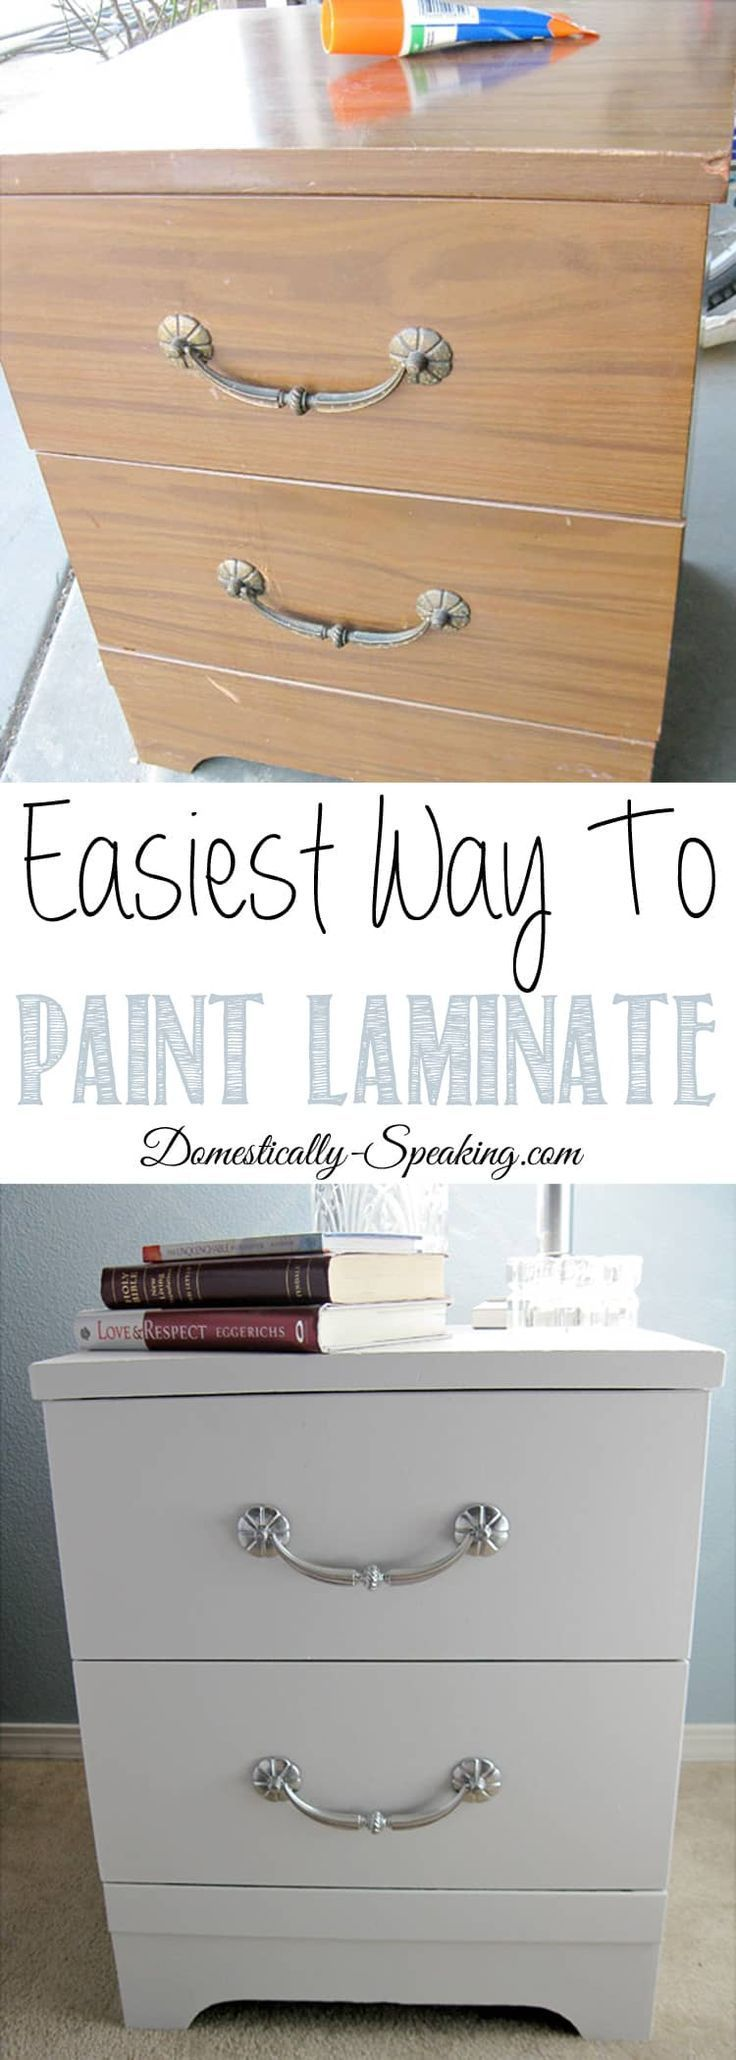 How to Paint Laminate Nightstands is part of Painting laminate, Laminate furniture, Painting laminate furniture, Redo furniture, Refinishing furniture, Refurbished furniture - Tutorial on how to paint laminate furniture  Shares how to paint ugly laminate nightstands easily